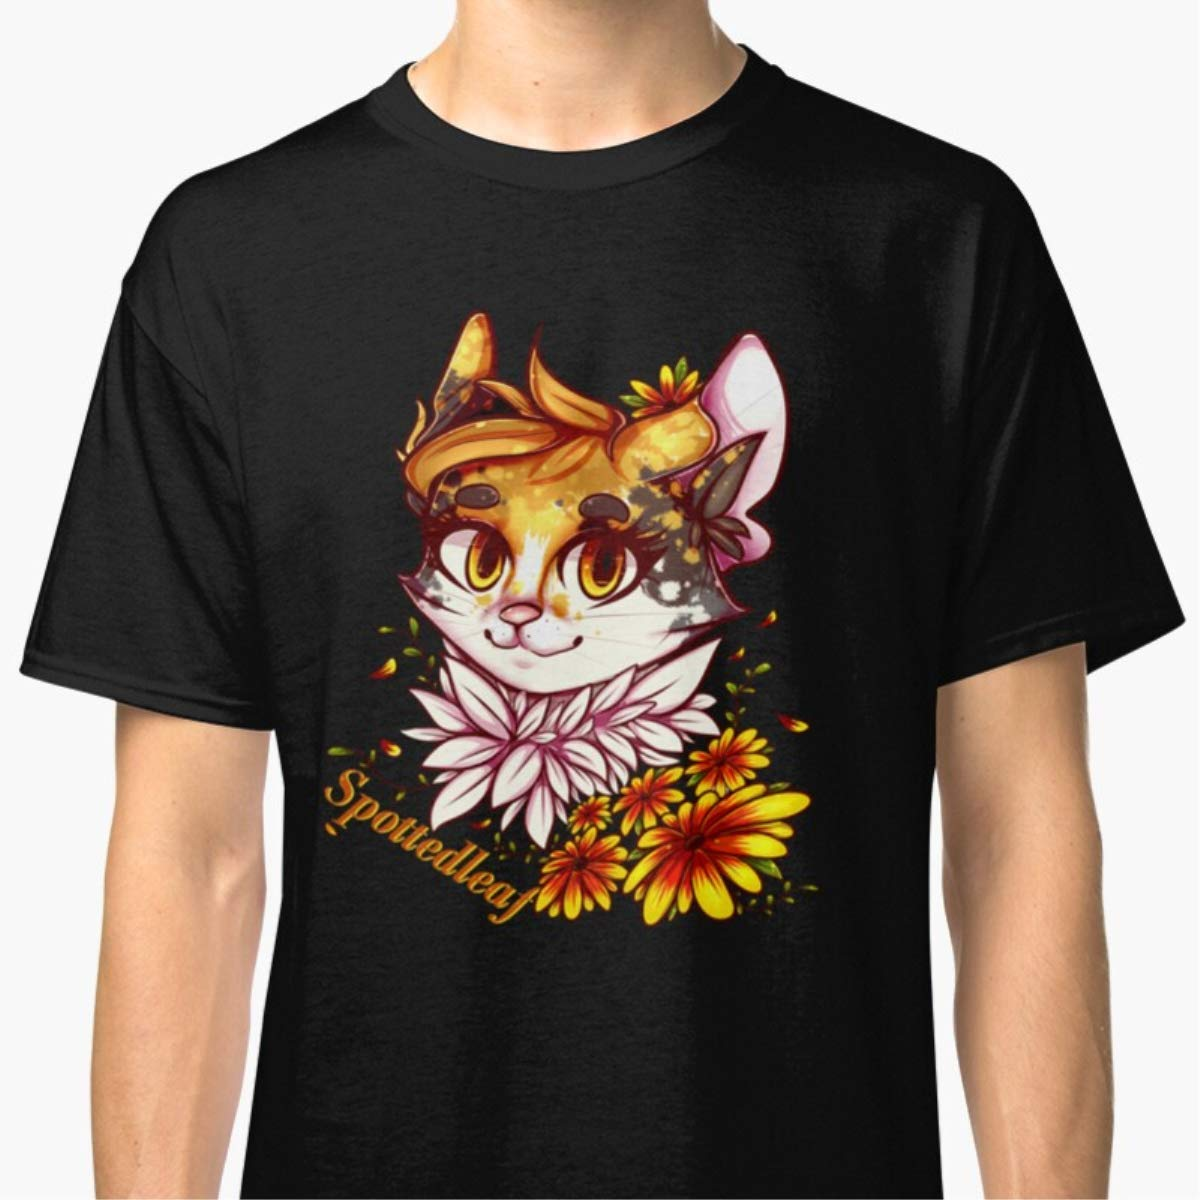 Unisex T-Shirt Spottedleaf Warrior Cats Shirts For Men Women Neck Perfect Gift